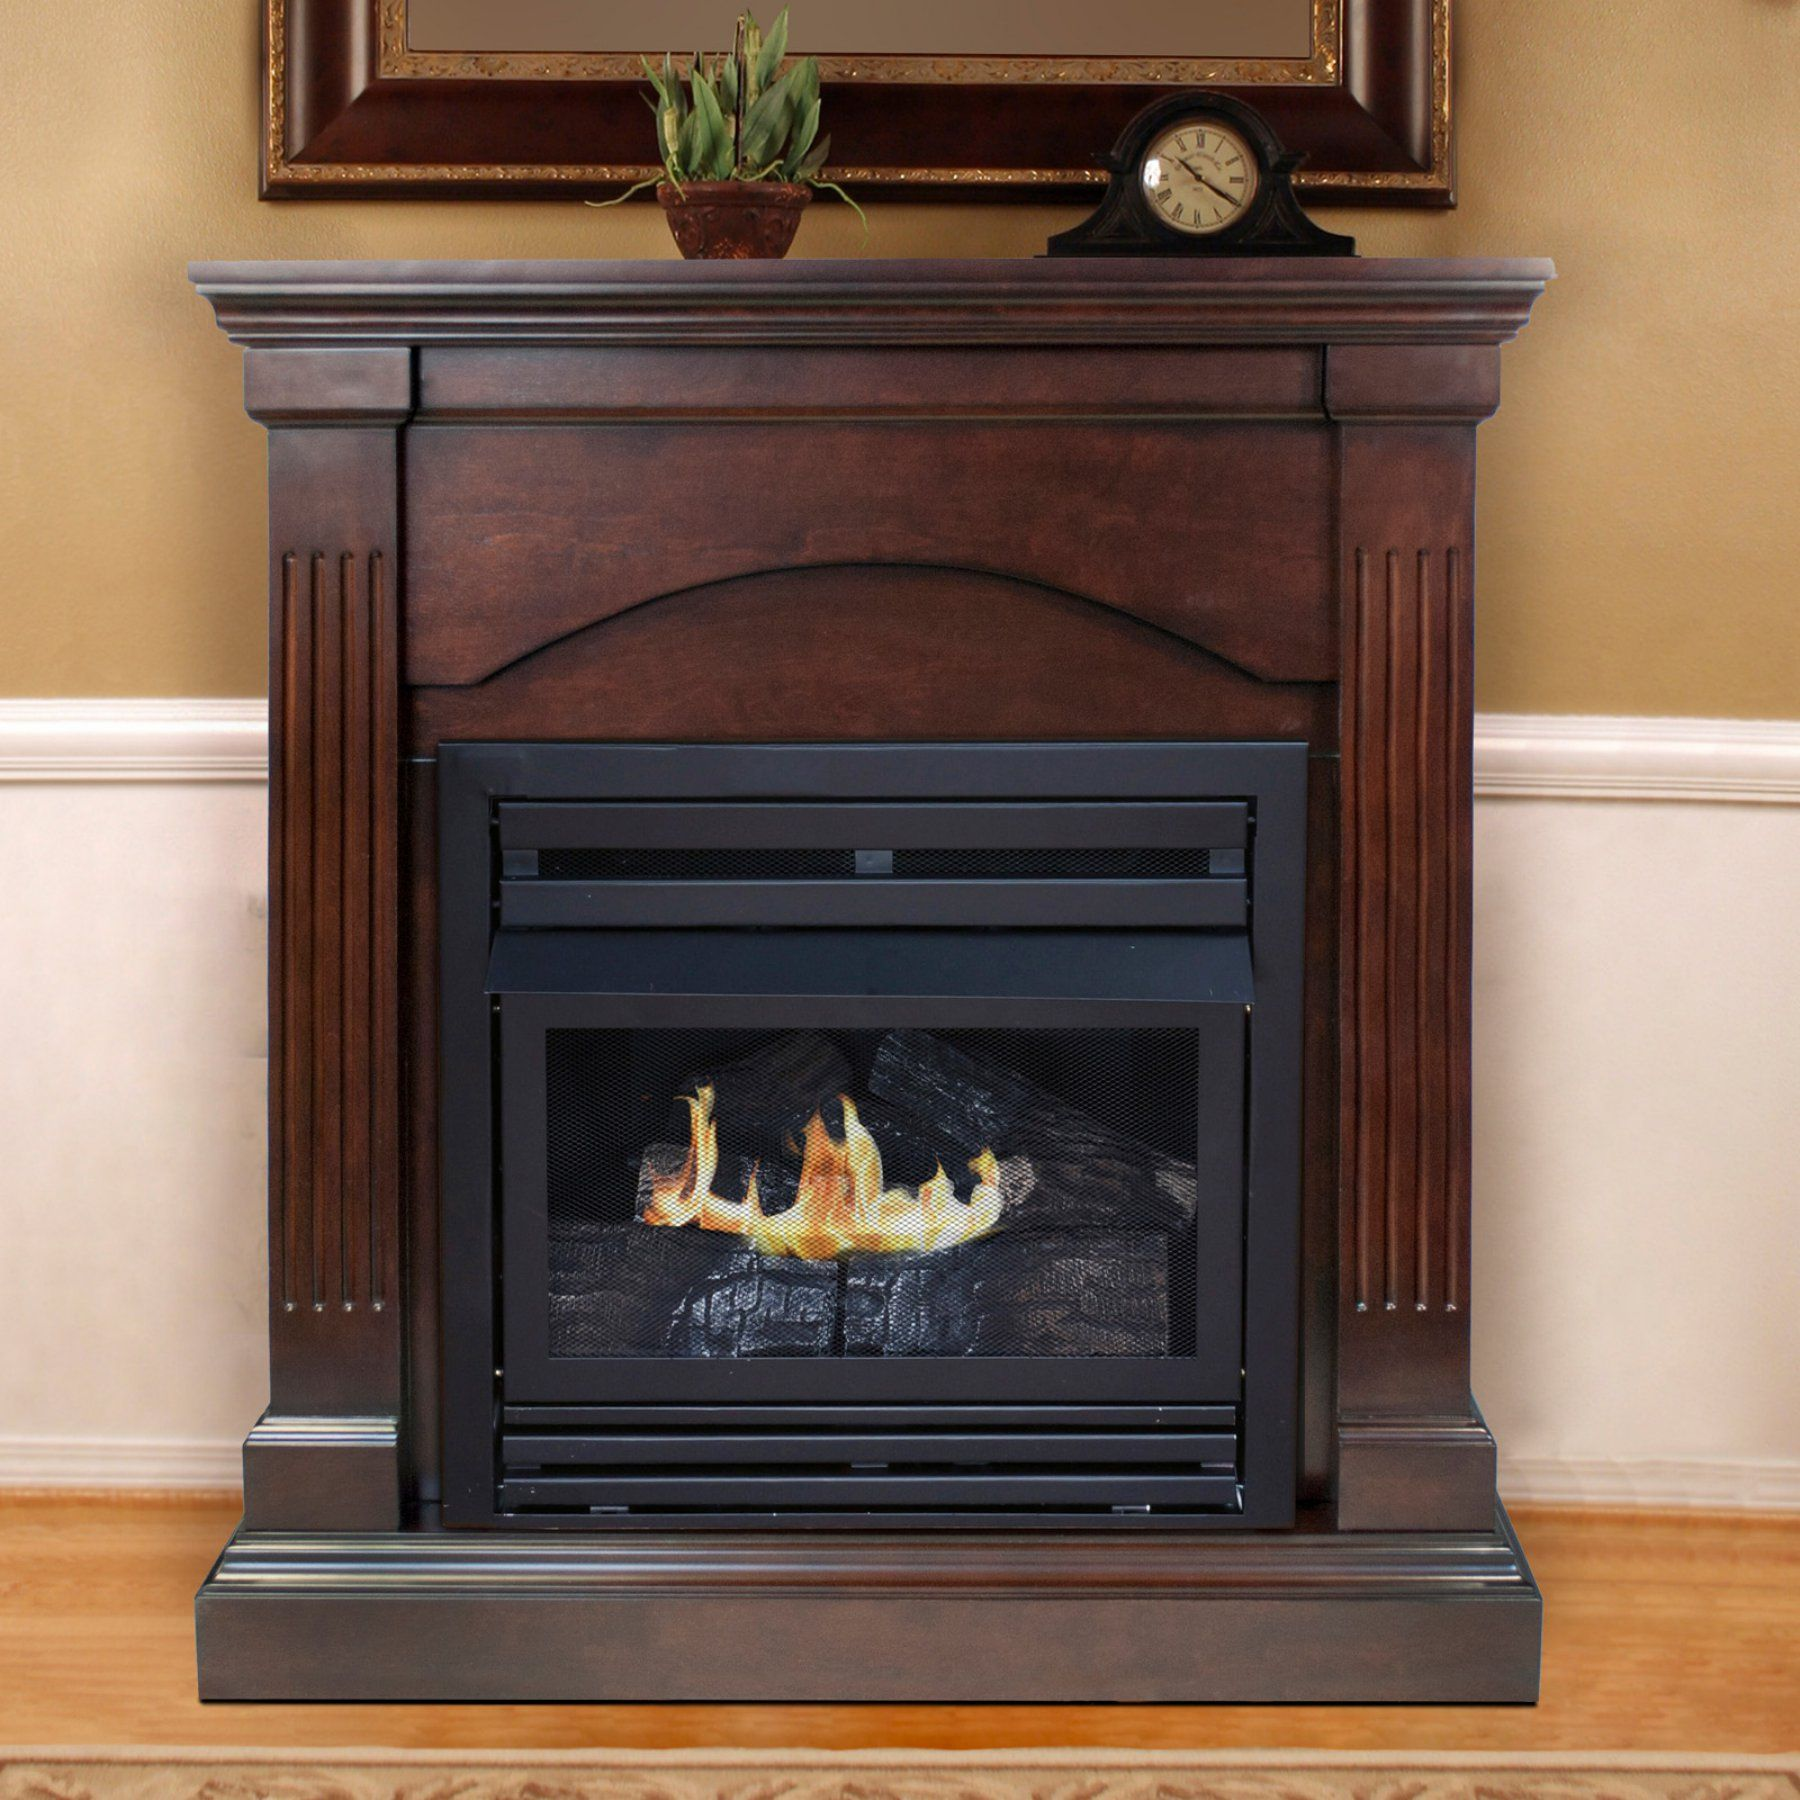 pleasant hearth gas fireplace insert www topsimages com rh topsimages com Pleasant Hearth Fireplace Insert VfL Ht30dr Pleasant Hearth Fireplace Insert VfL Ht30dr